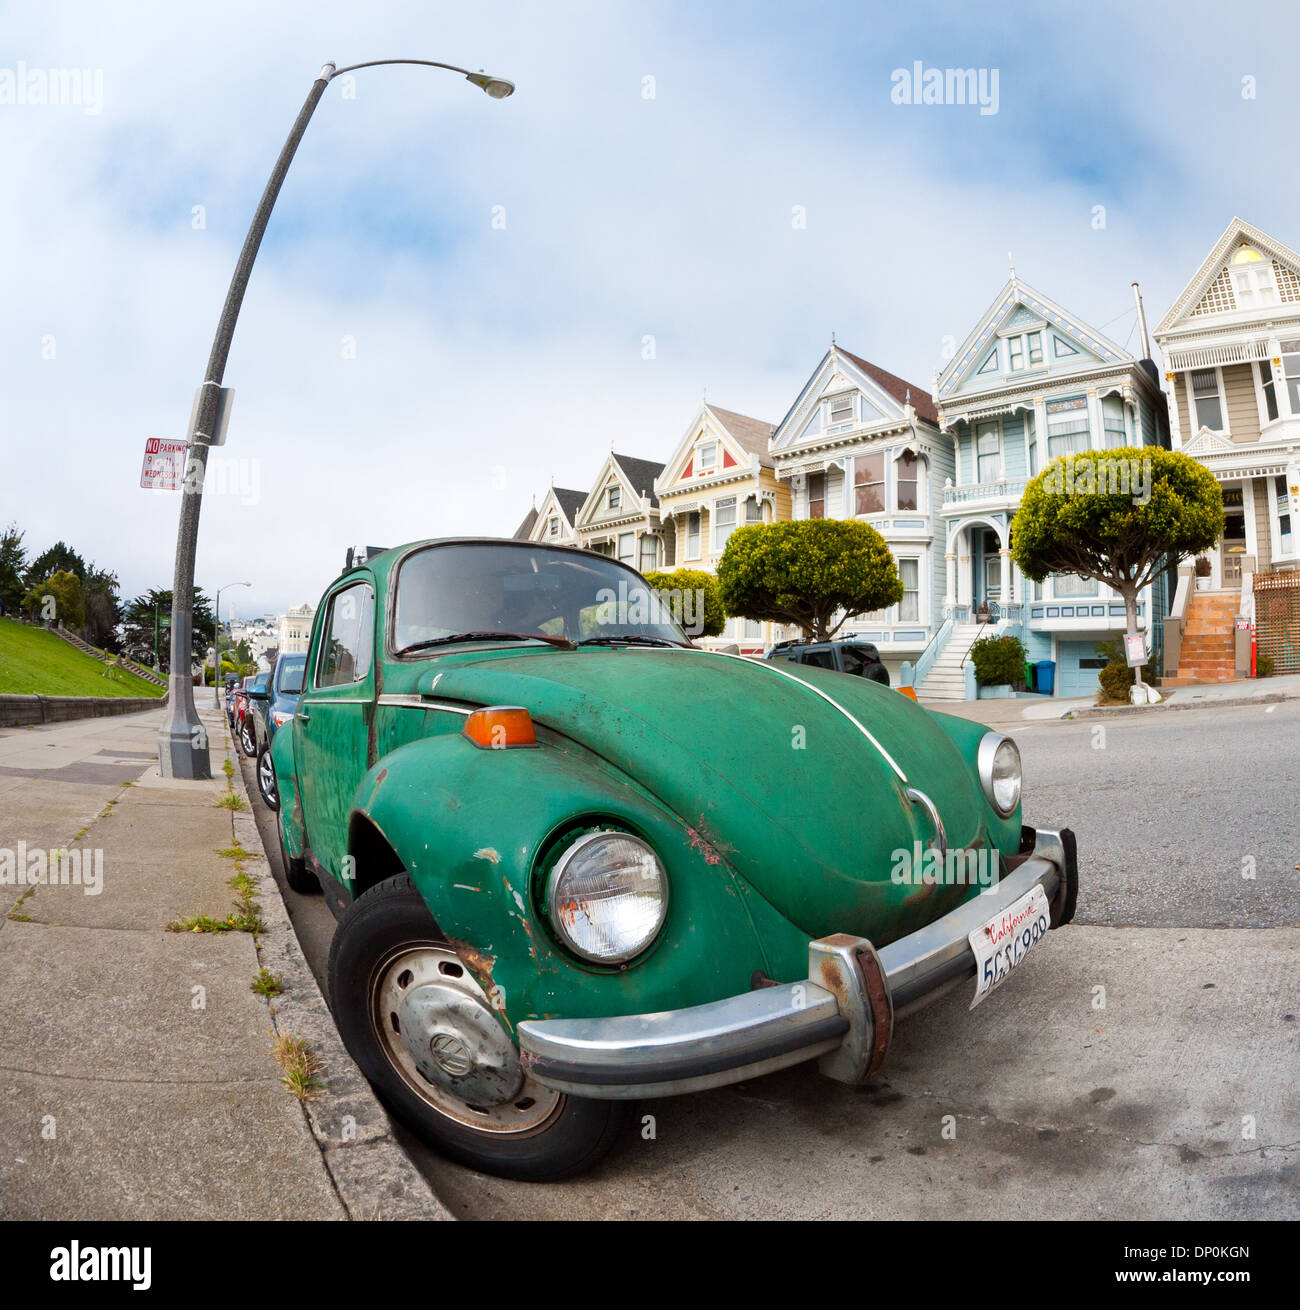 A fisheye view of a Volkswagen Beetle at Alamo Square on Steiner Street in San Francisco. - Stock Image